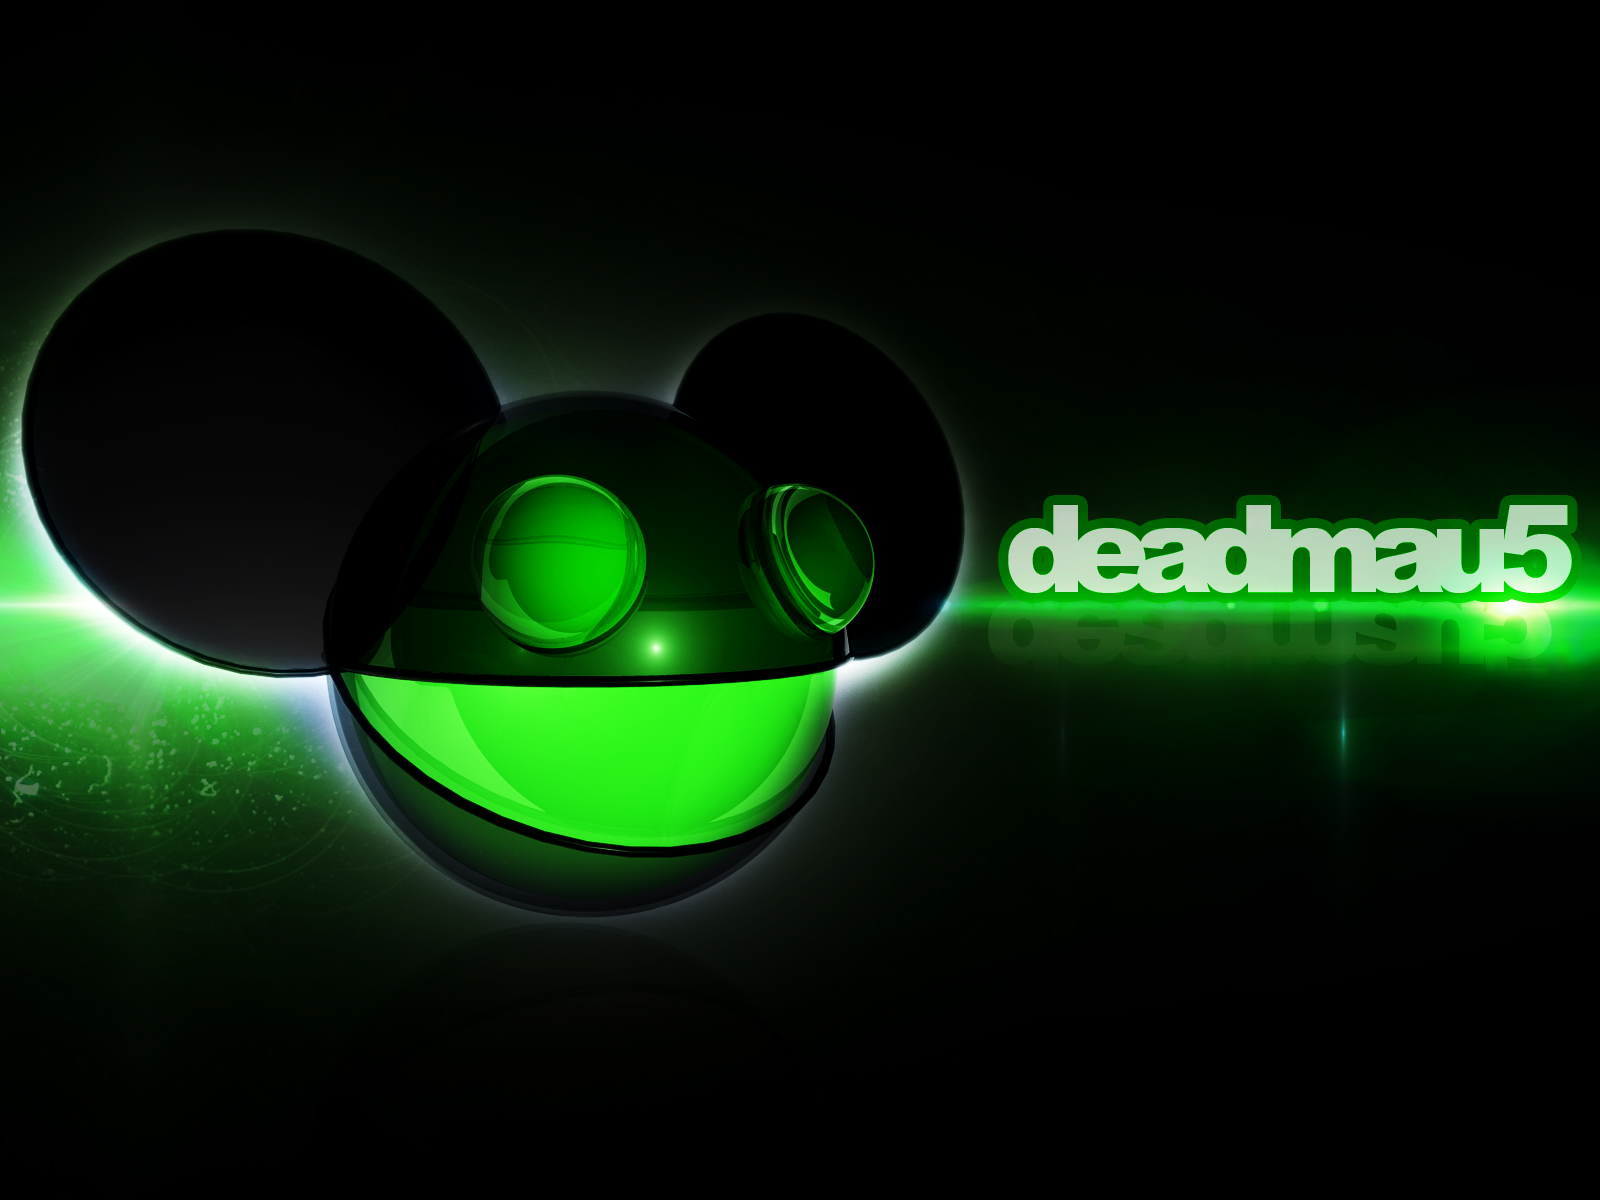 <b>Deadmau5 Wallpapers</b> - WallpaperVortex.com